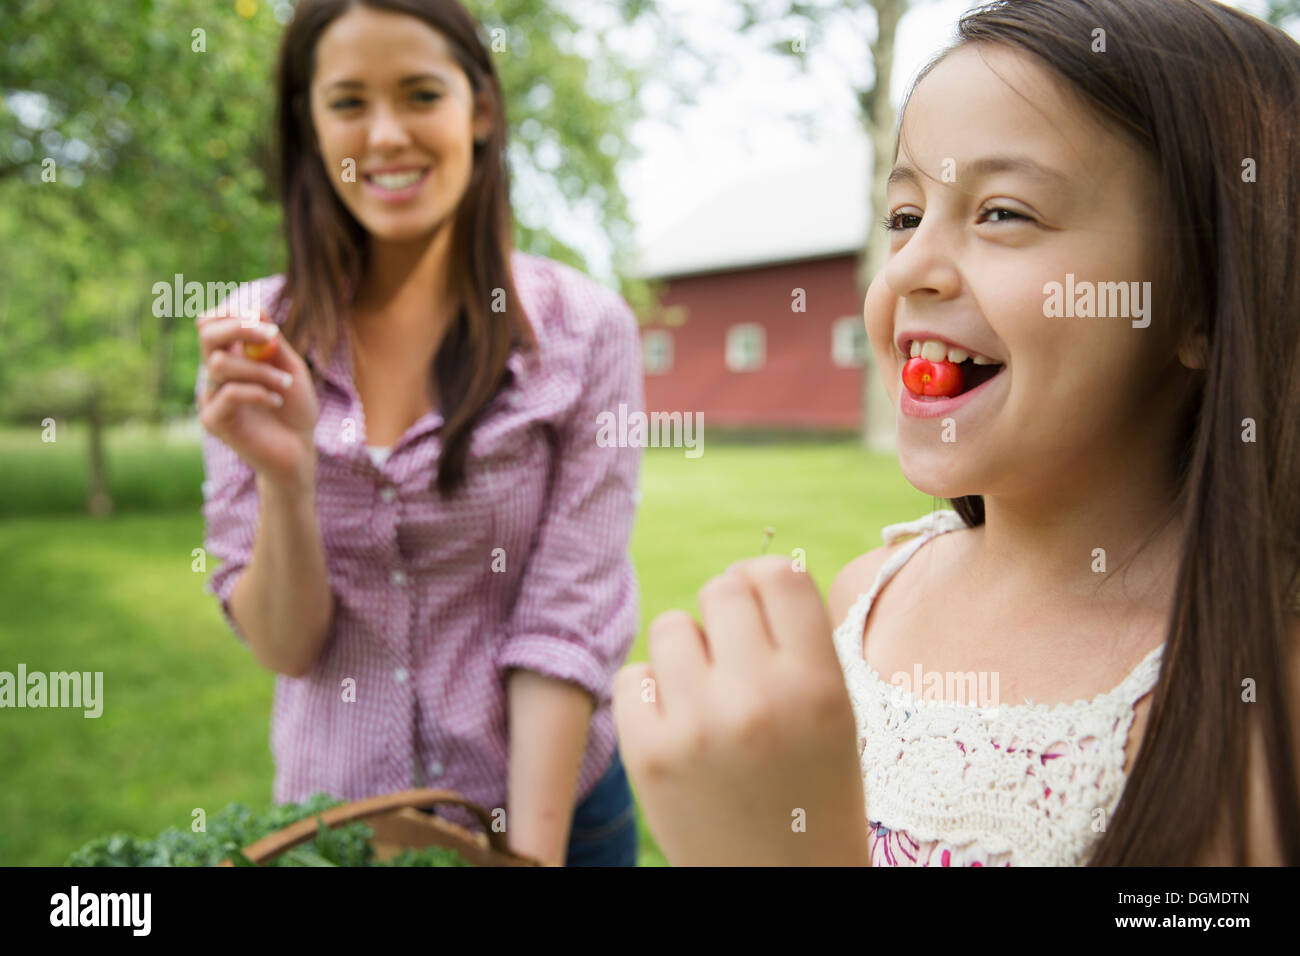 Family party. A child with a fresh cherry between her teeth. A young woman watching her and laughing. - Stock Image